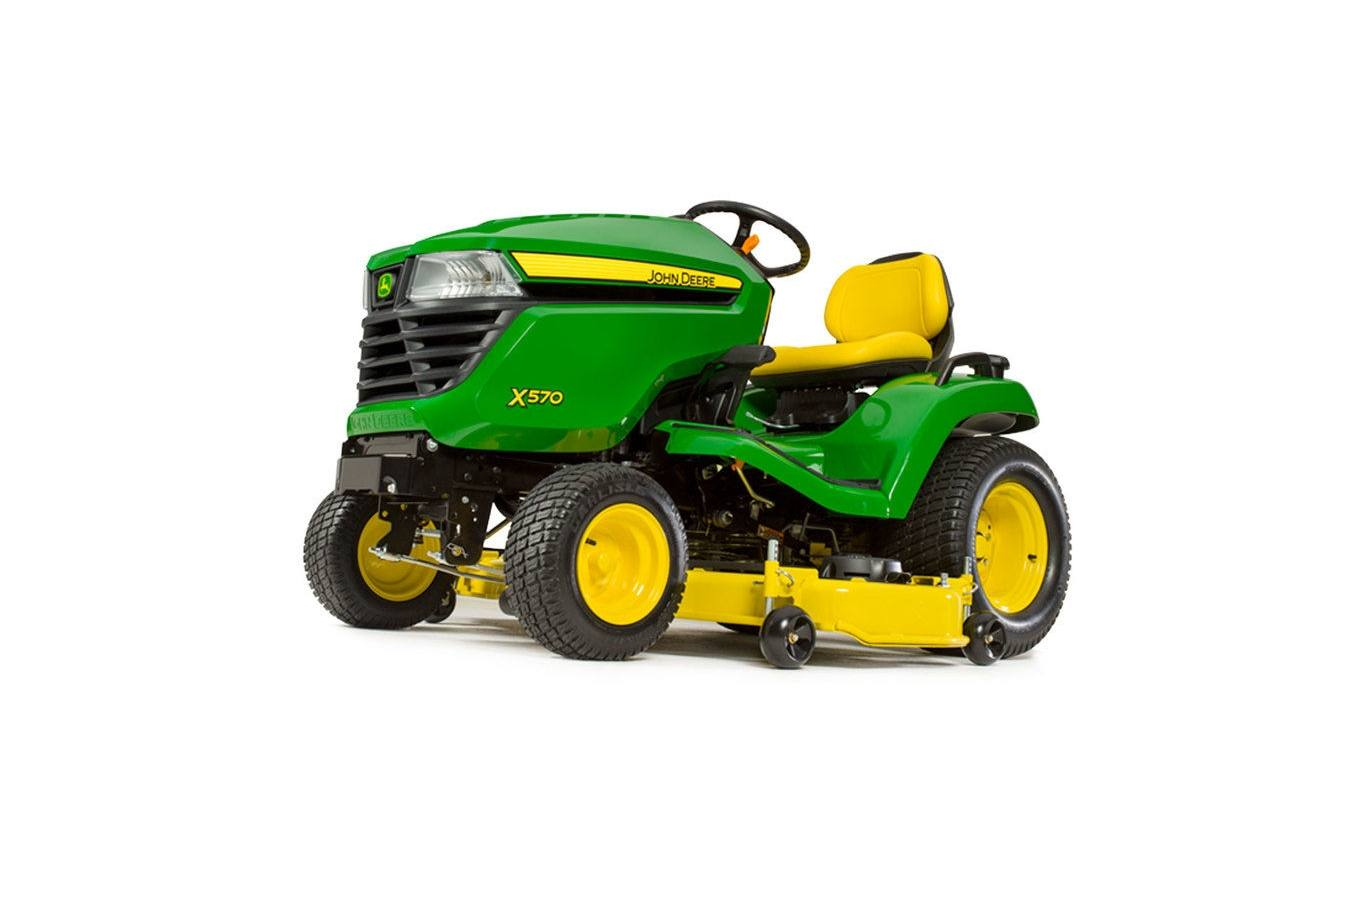 2018 John Deere X570, 48-in  Deck